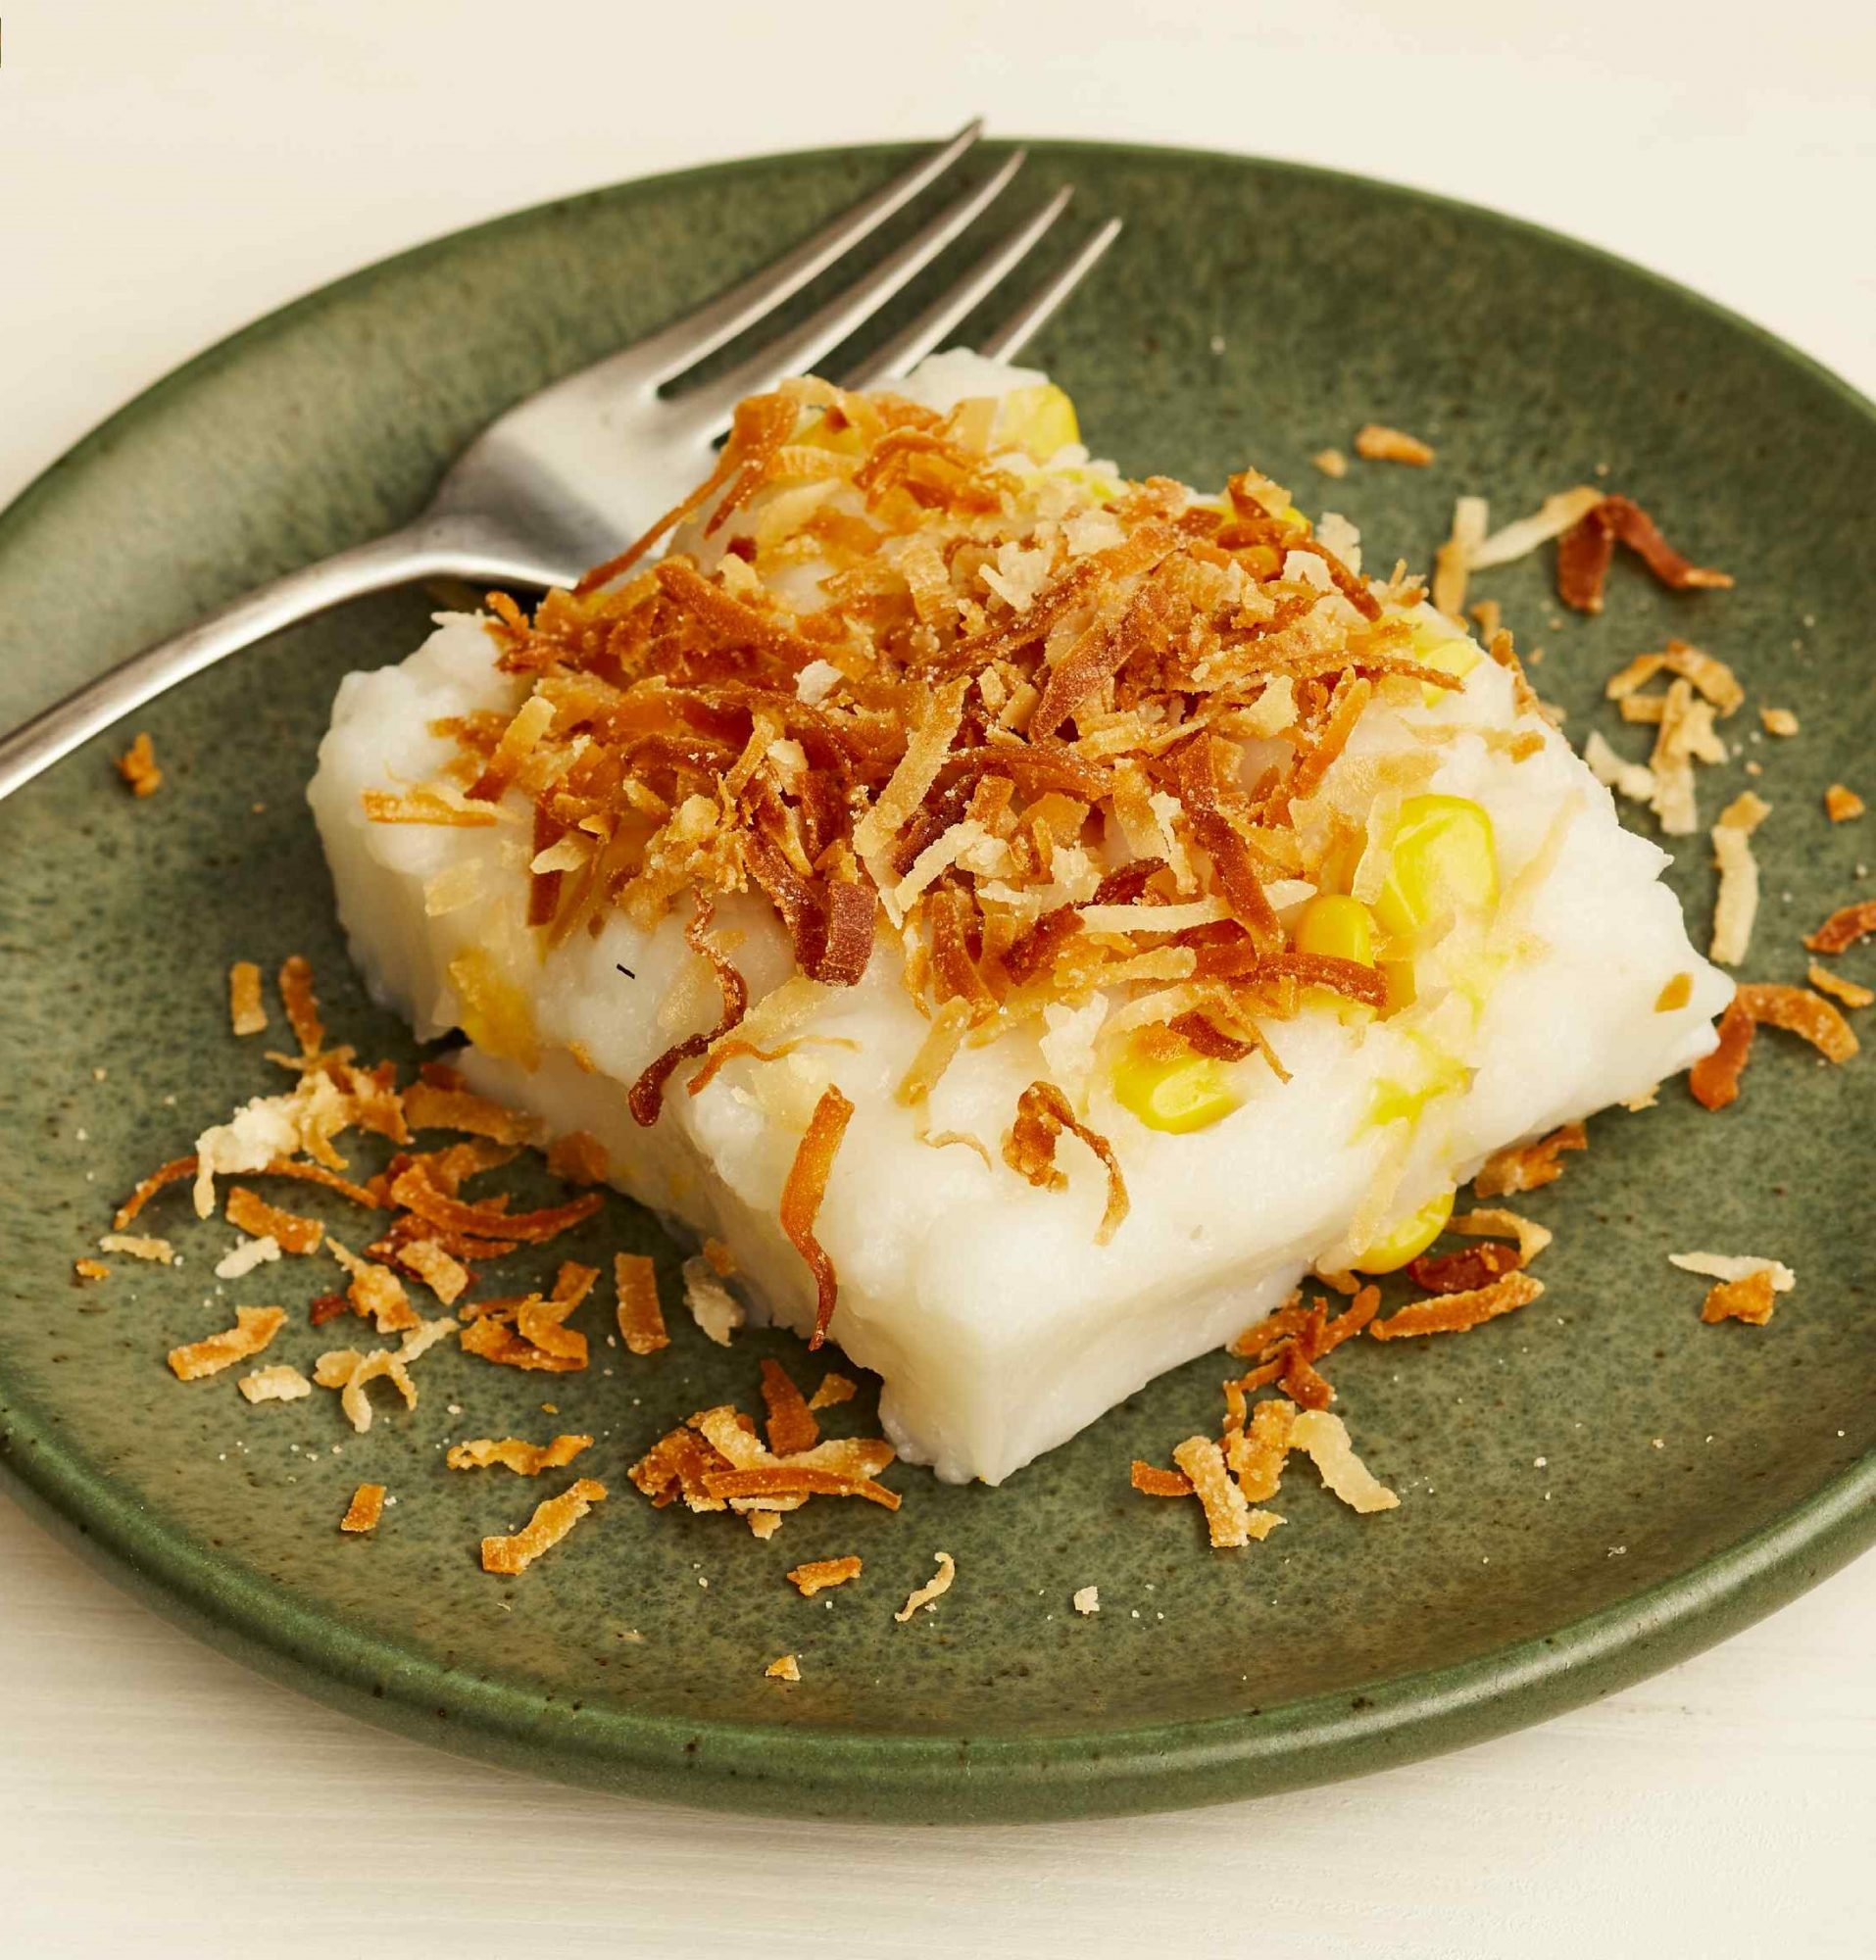 Maja Blanca Coconut Pudding topped with toasted coconut on a green plate